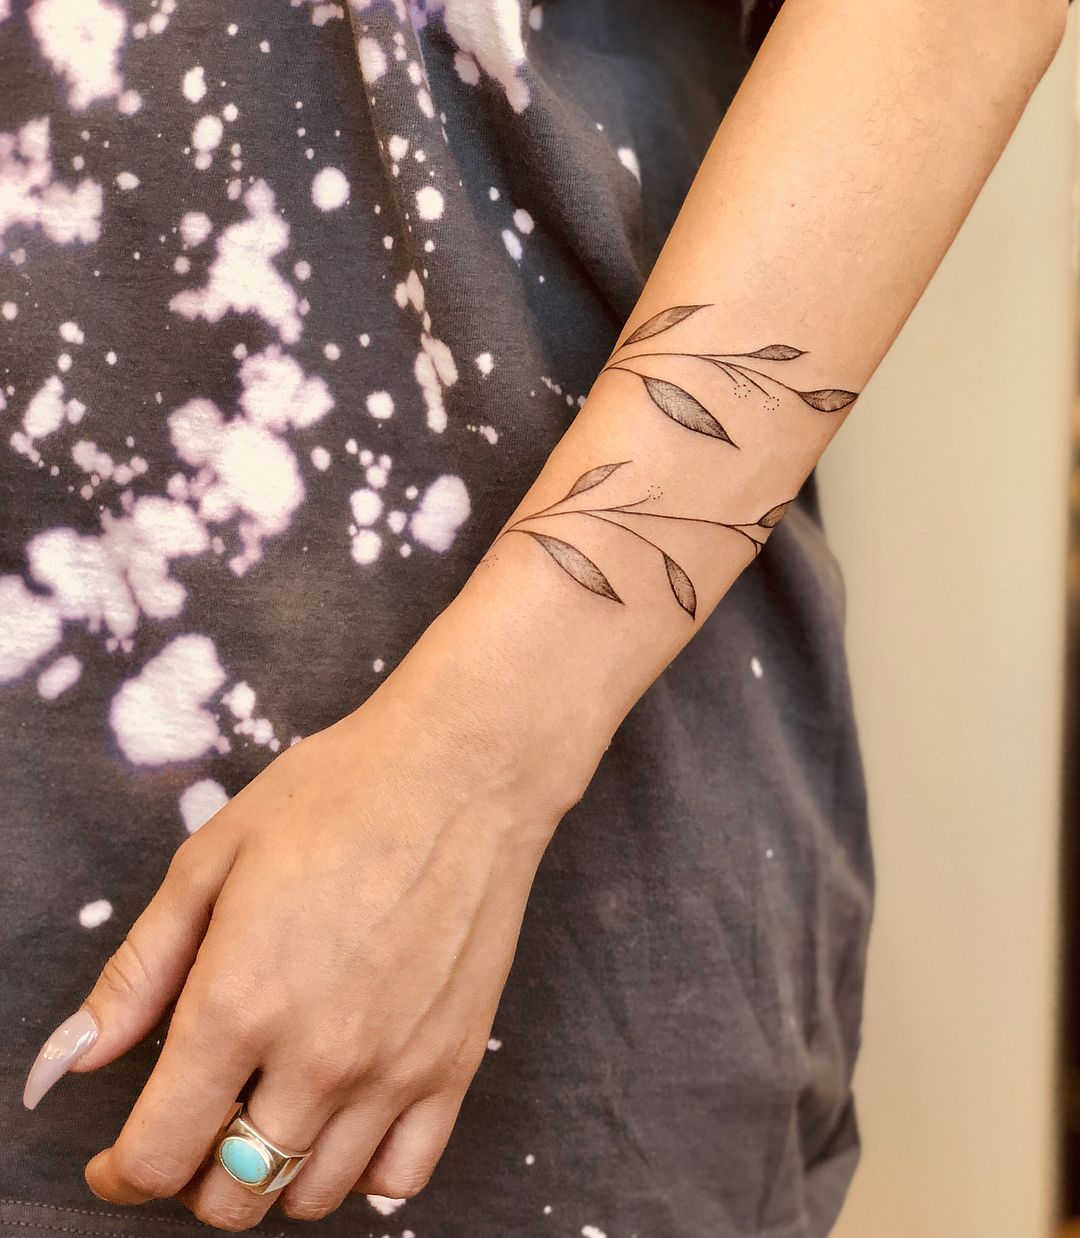 20 Fall-Inspired Tattoos That Show Off the Dreamie